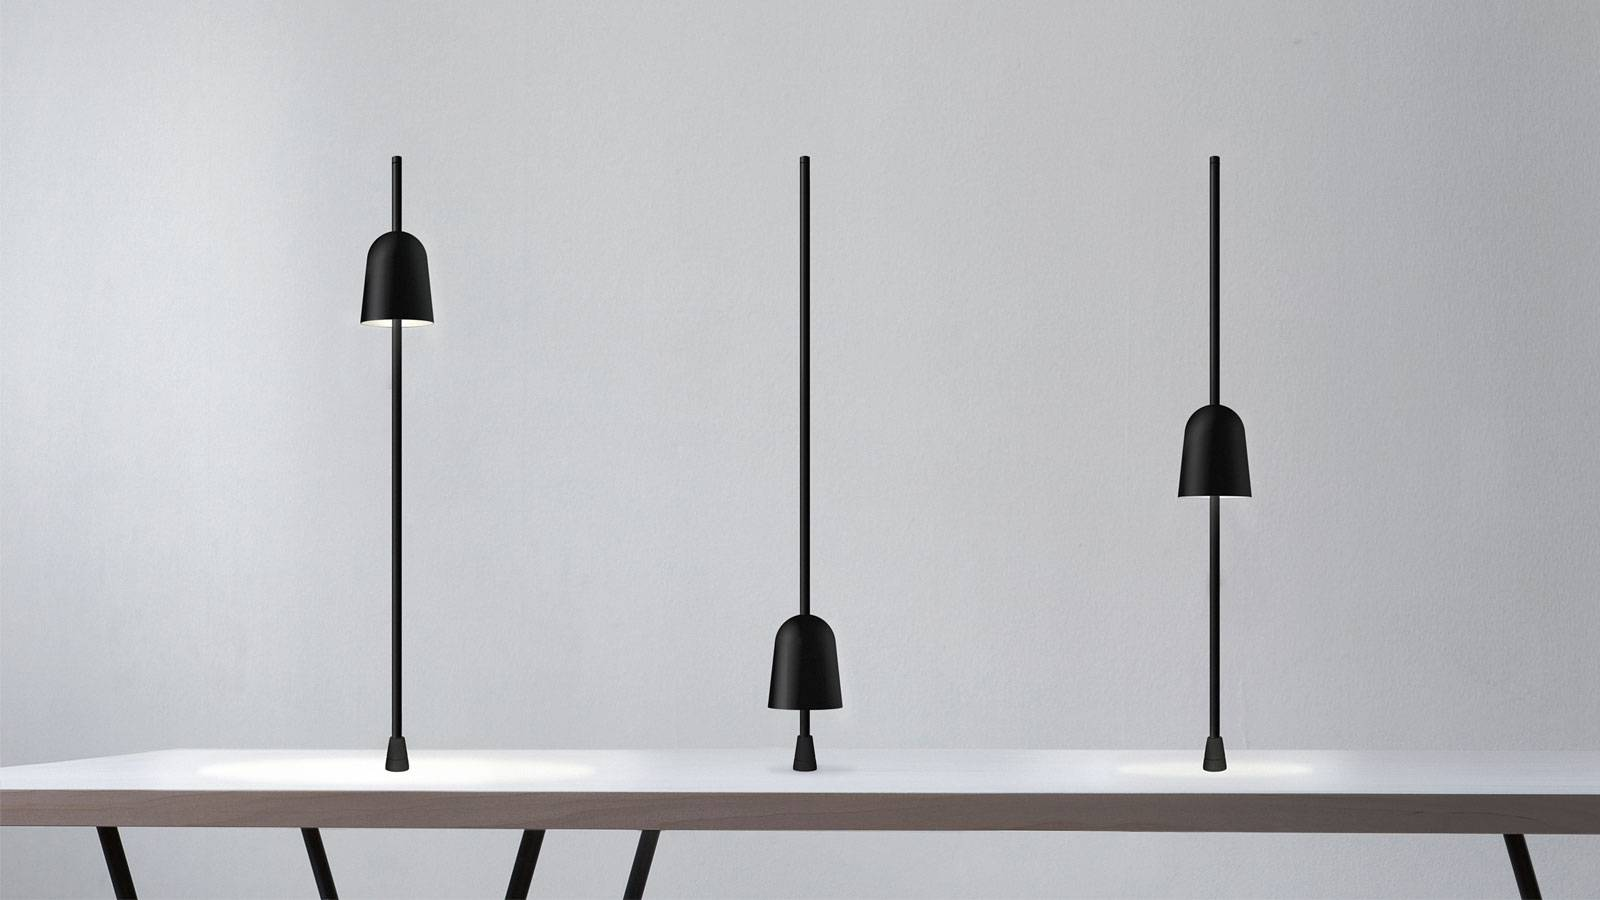 contemporary design lighting by Daniel Rybakken for Luceplan